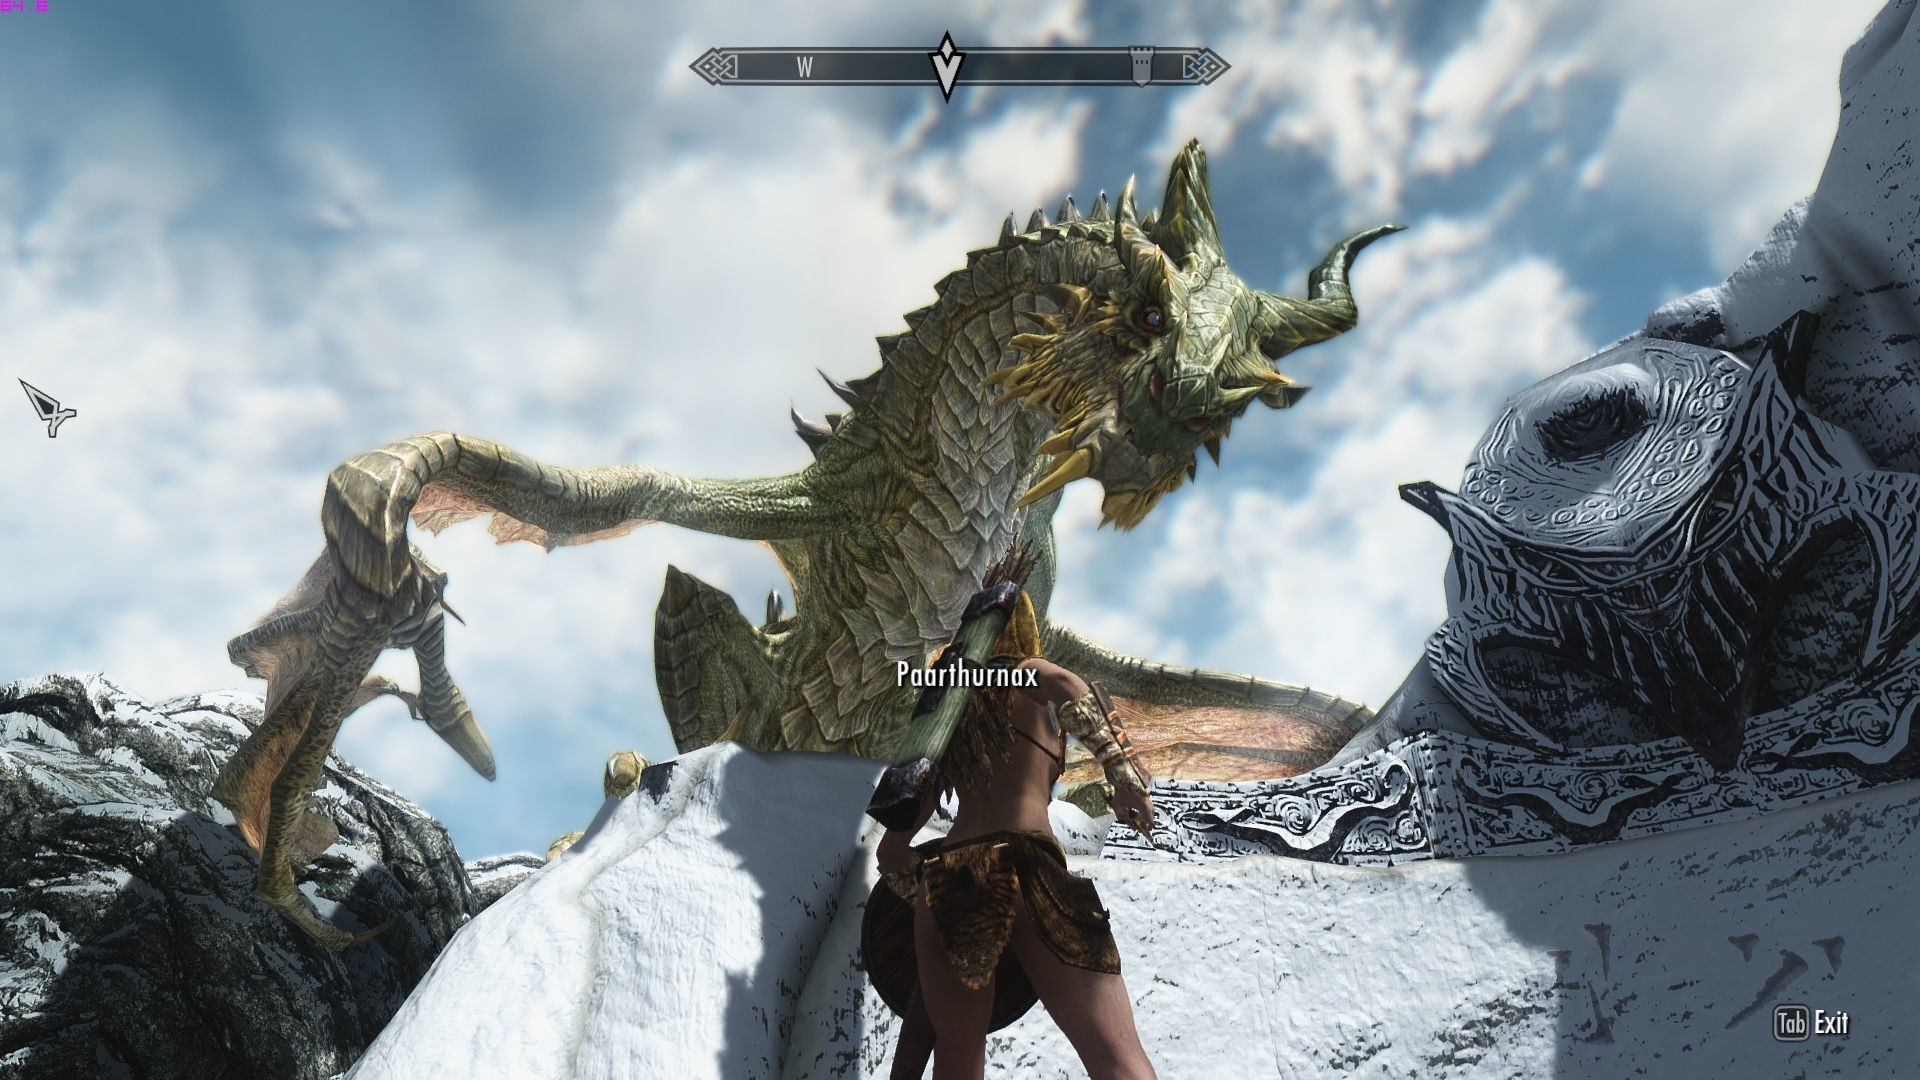 Here are some Skyrim Screenshots at full 1080p HD resolution. These .